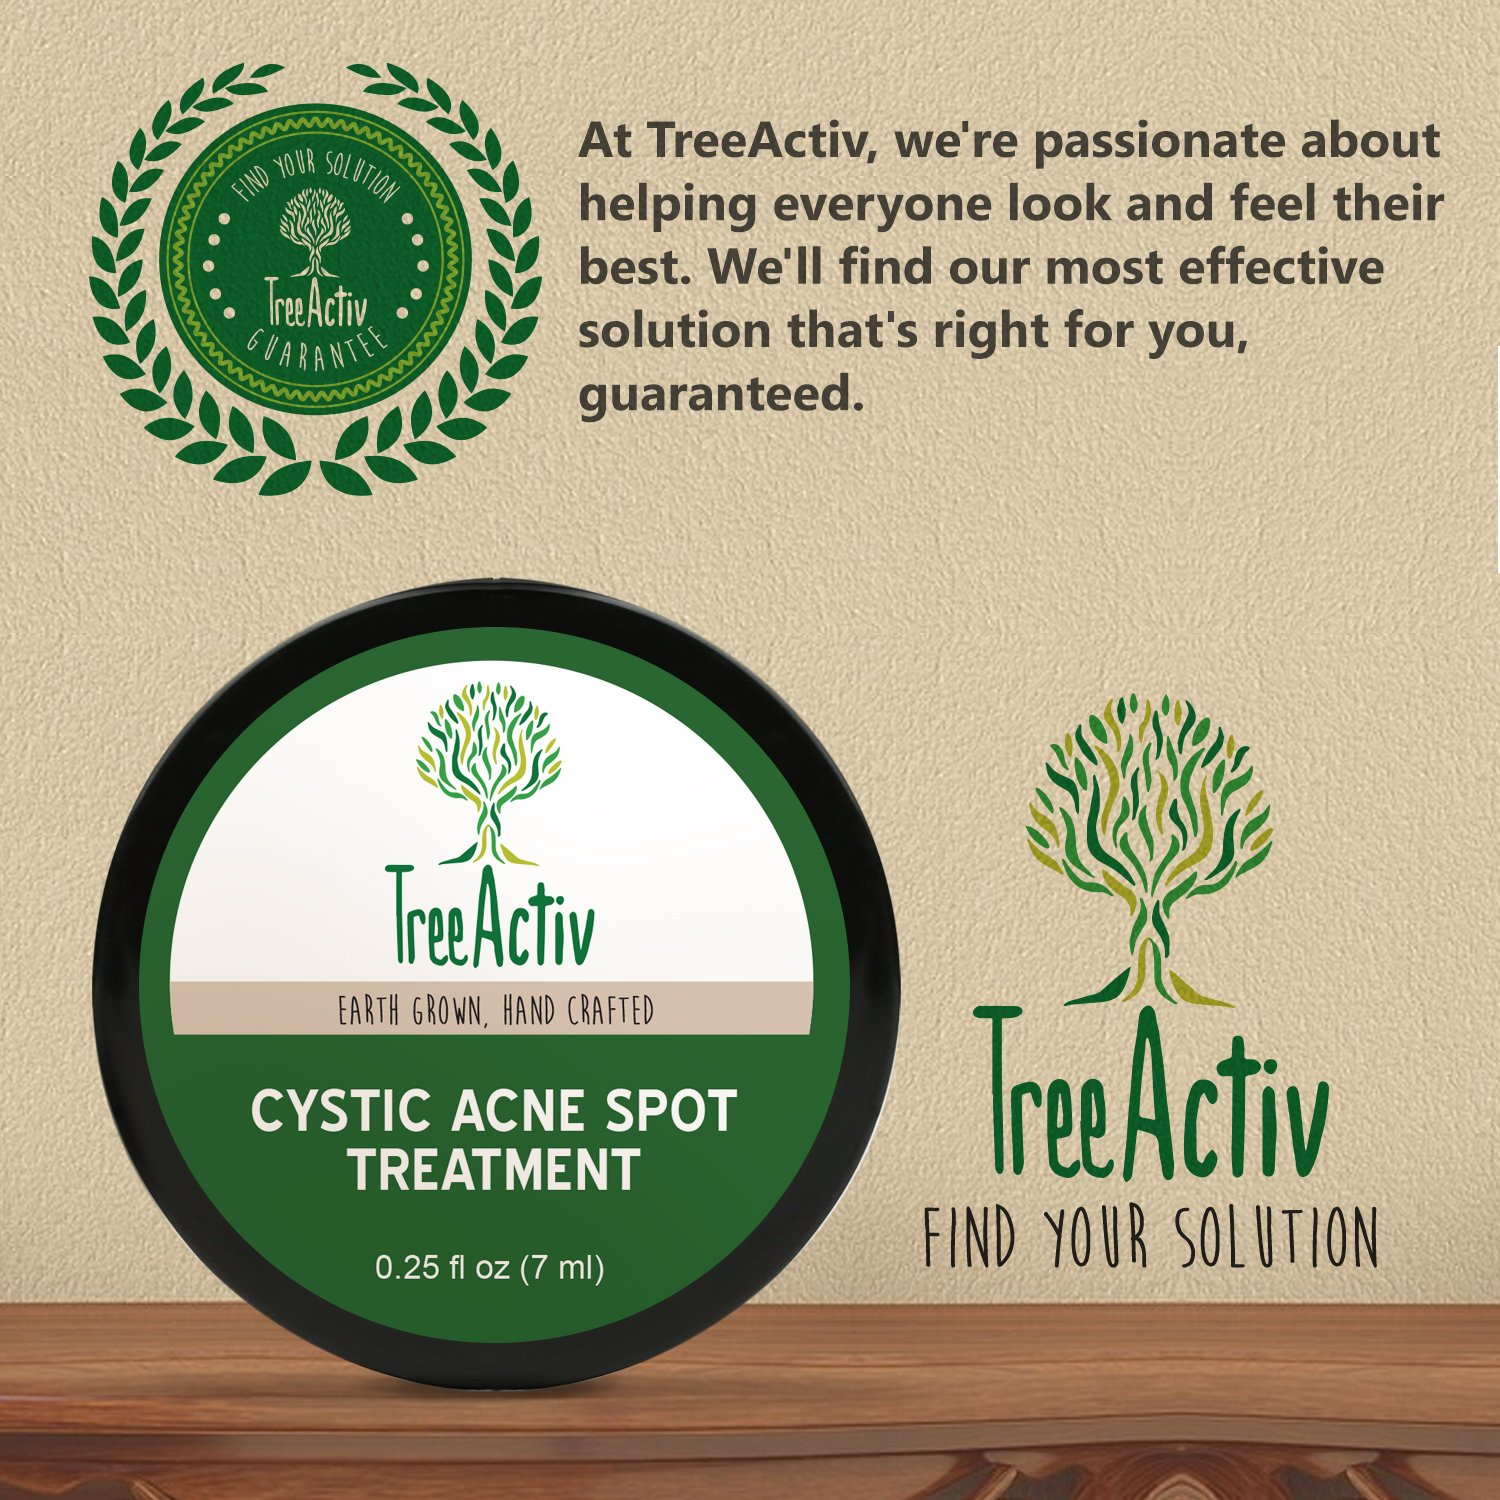 TreeActiv Cystic Acne Spot Treatment, Best Extra Strength Fast Acting Formula for Clearing Severe Acne from Face and Body, Gentle Enough for Sensitive Skin, Adults, Teens, Men, Women (0.25 Ounce) by TreeActiv (Image #6)